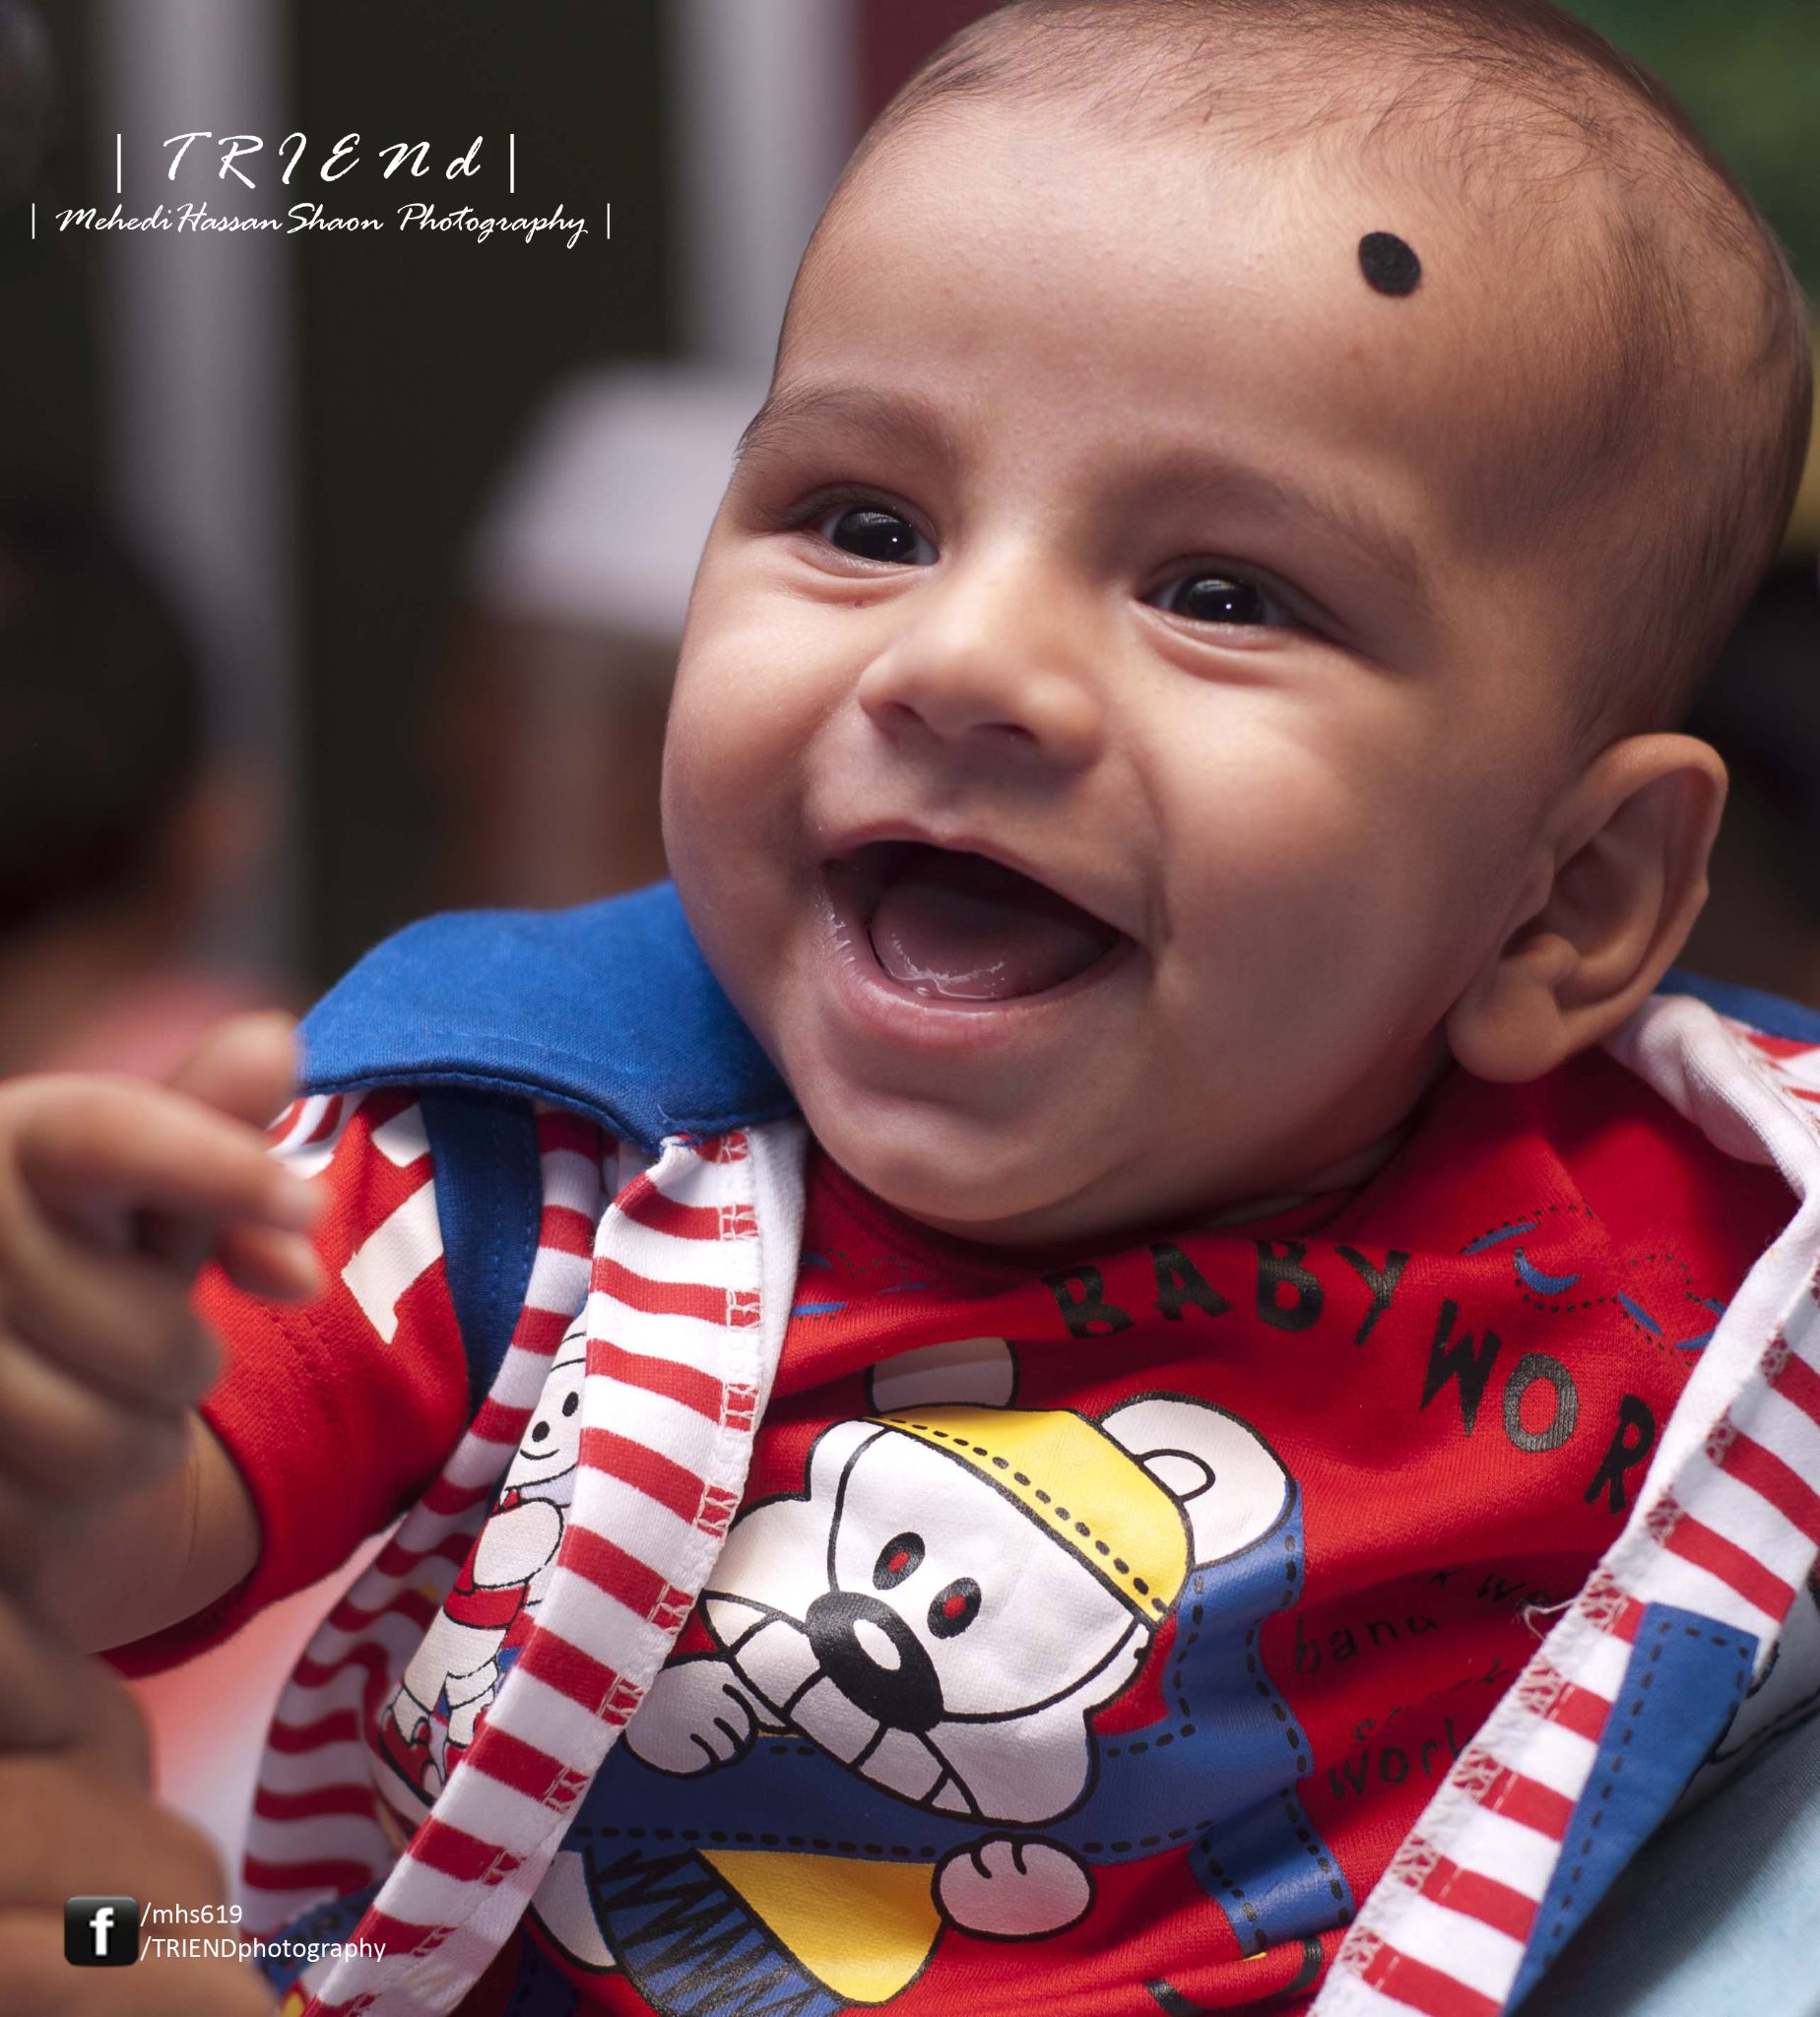 An Innocent Smile by Mehedi Hassan Shaon